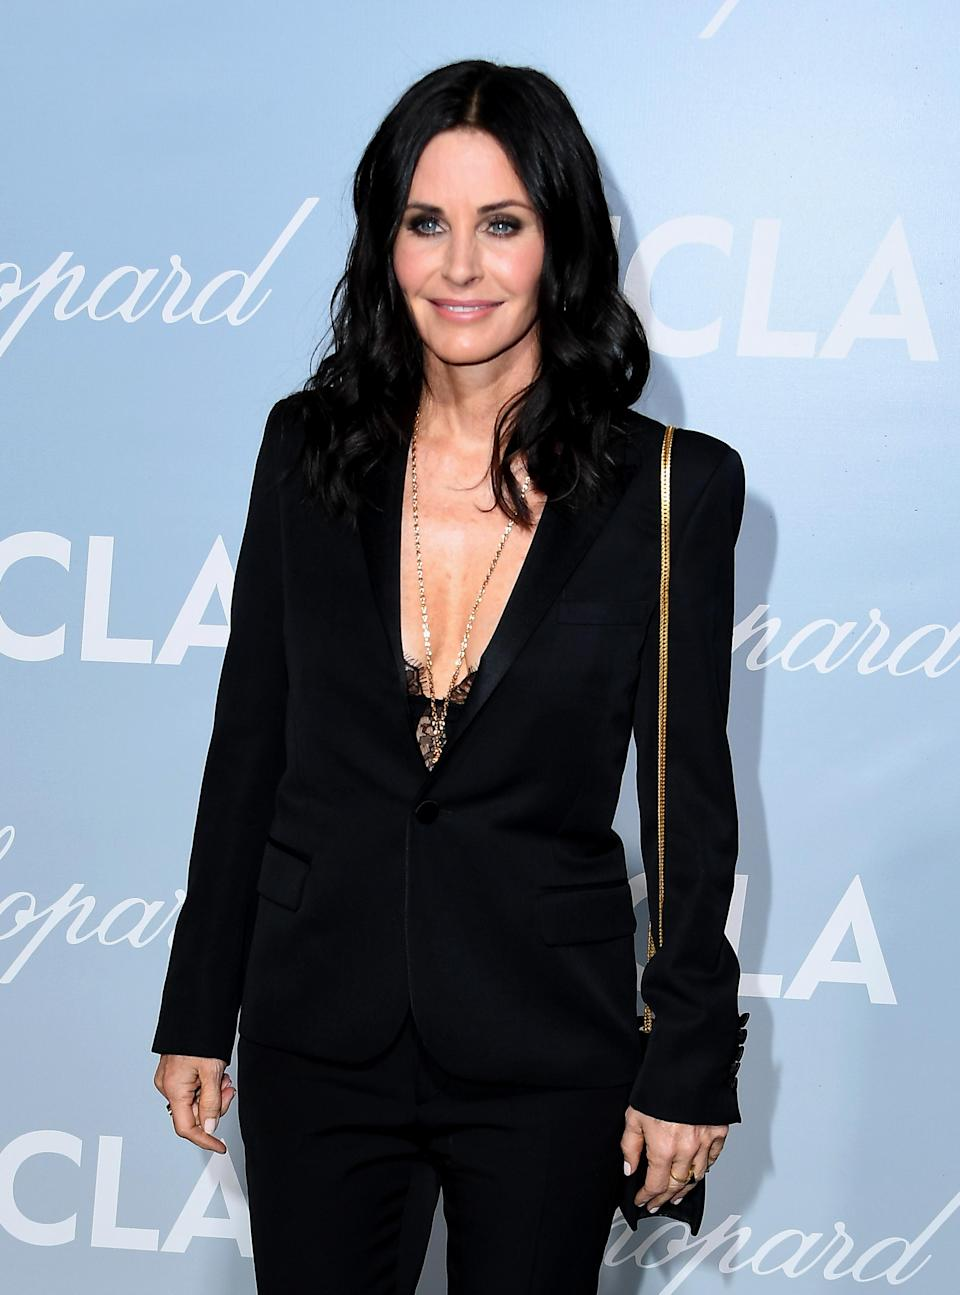 "<p>The former 'Friends' actress got candid about her plastic surgery regrets during an interview with <a href=""https://www.newbeauty.com/blog/dailybeauty/11013-courteney-cox-beauty/"" rel=""nofollow noopener"" target=""_blank"" data-ylk=""slk:New Beauty"" class=""link rapid-noclick-resp""><em>New Beauty</em></a> magazine, admitting: ""You have no idea because it's gradual, until you go, 'Oh, sh*t. This doesn't look right.' And it's worse in pictures than in real life."" The 54-year-old added, ""I've had all my fillers dissolved. I'm as natural as I can be. I feel better because I look like myself. I think that I now look more like the person that I was. I hope I do."" <em>[Photo: Getty]</em> </p>"